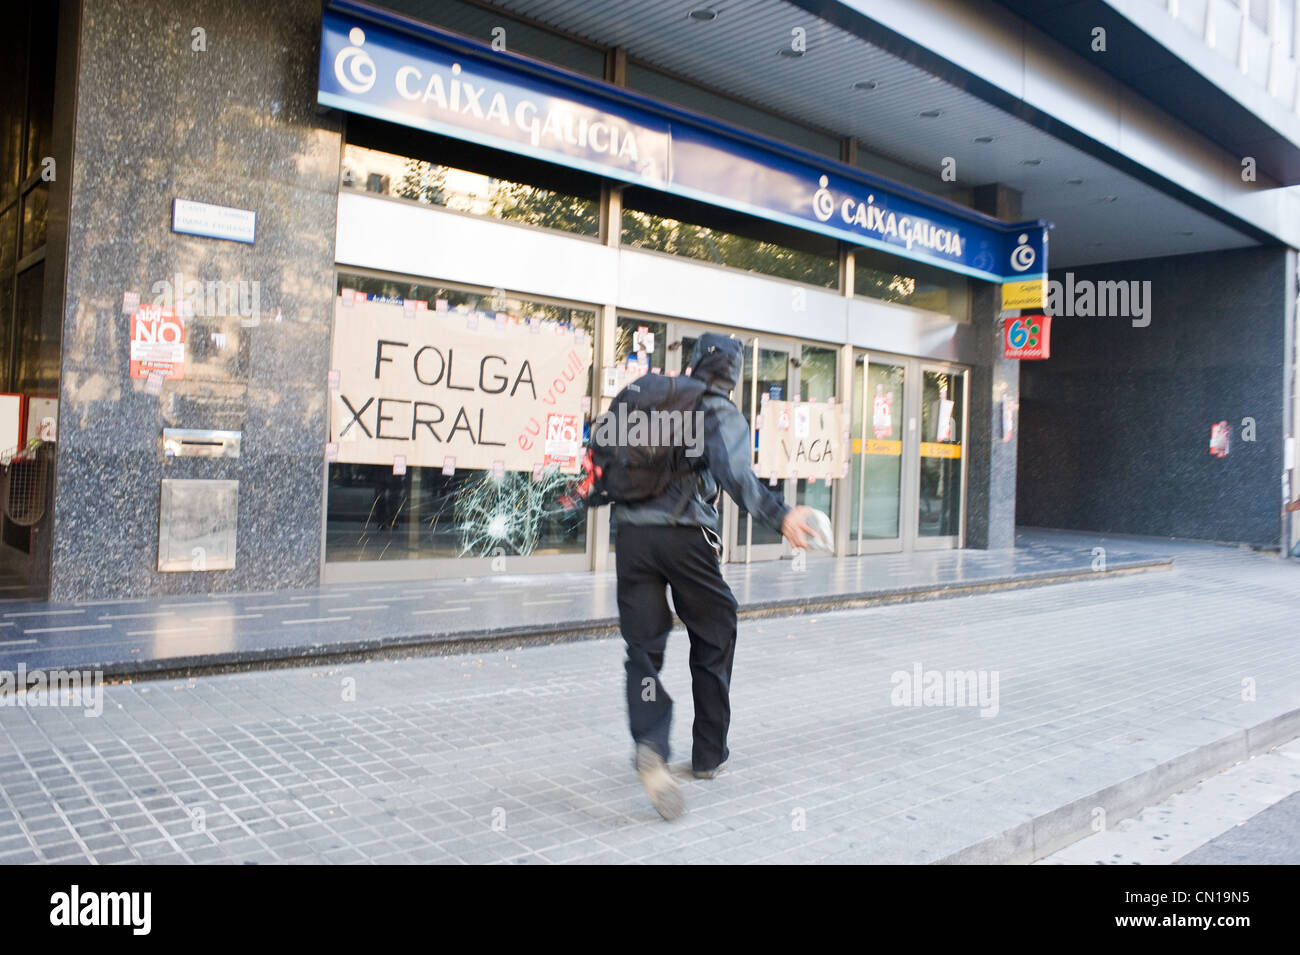 Protestor attacking a bank branch during the general strike of 2010 in Barcelona, Spain. - Stock Image